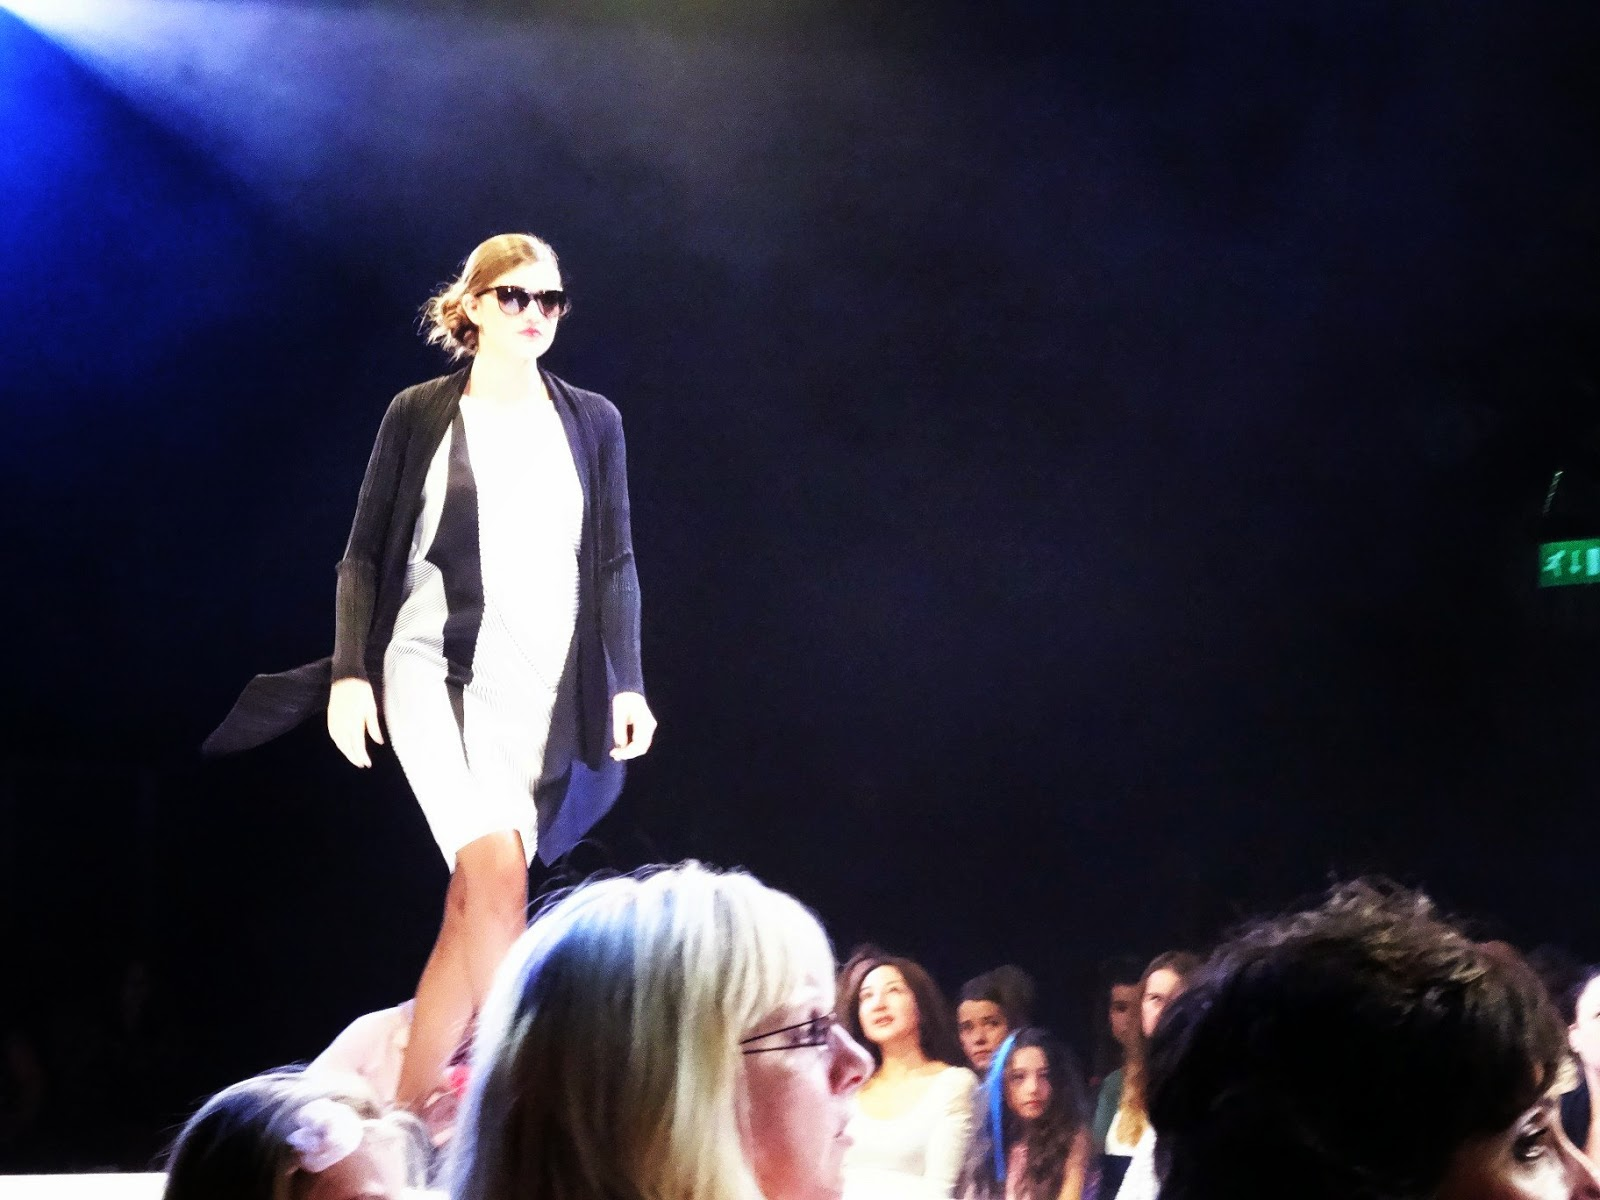 Fashion show at Bristol Fashion Week